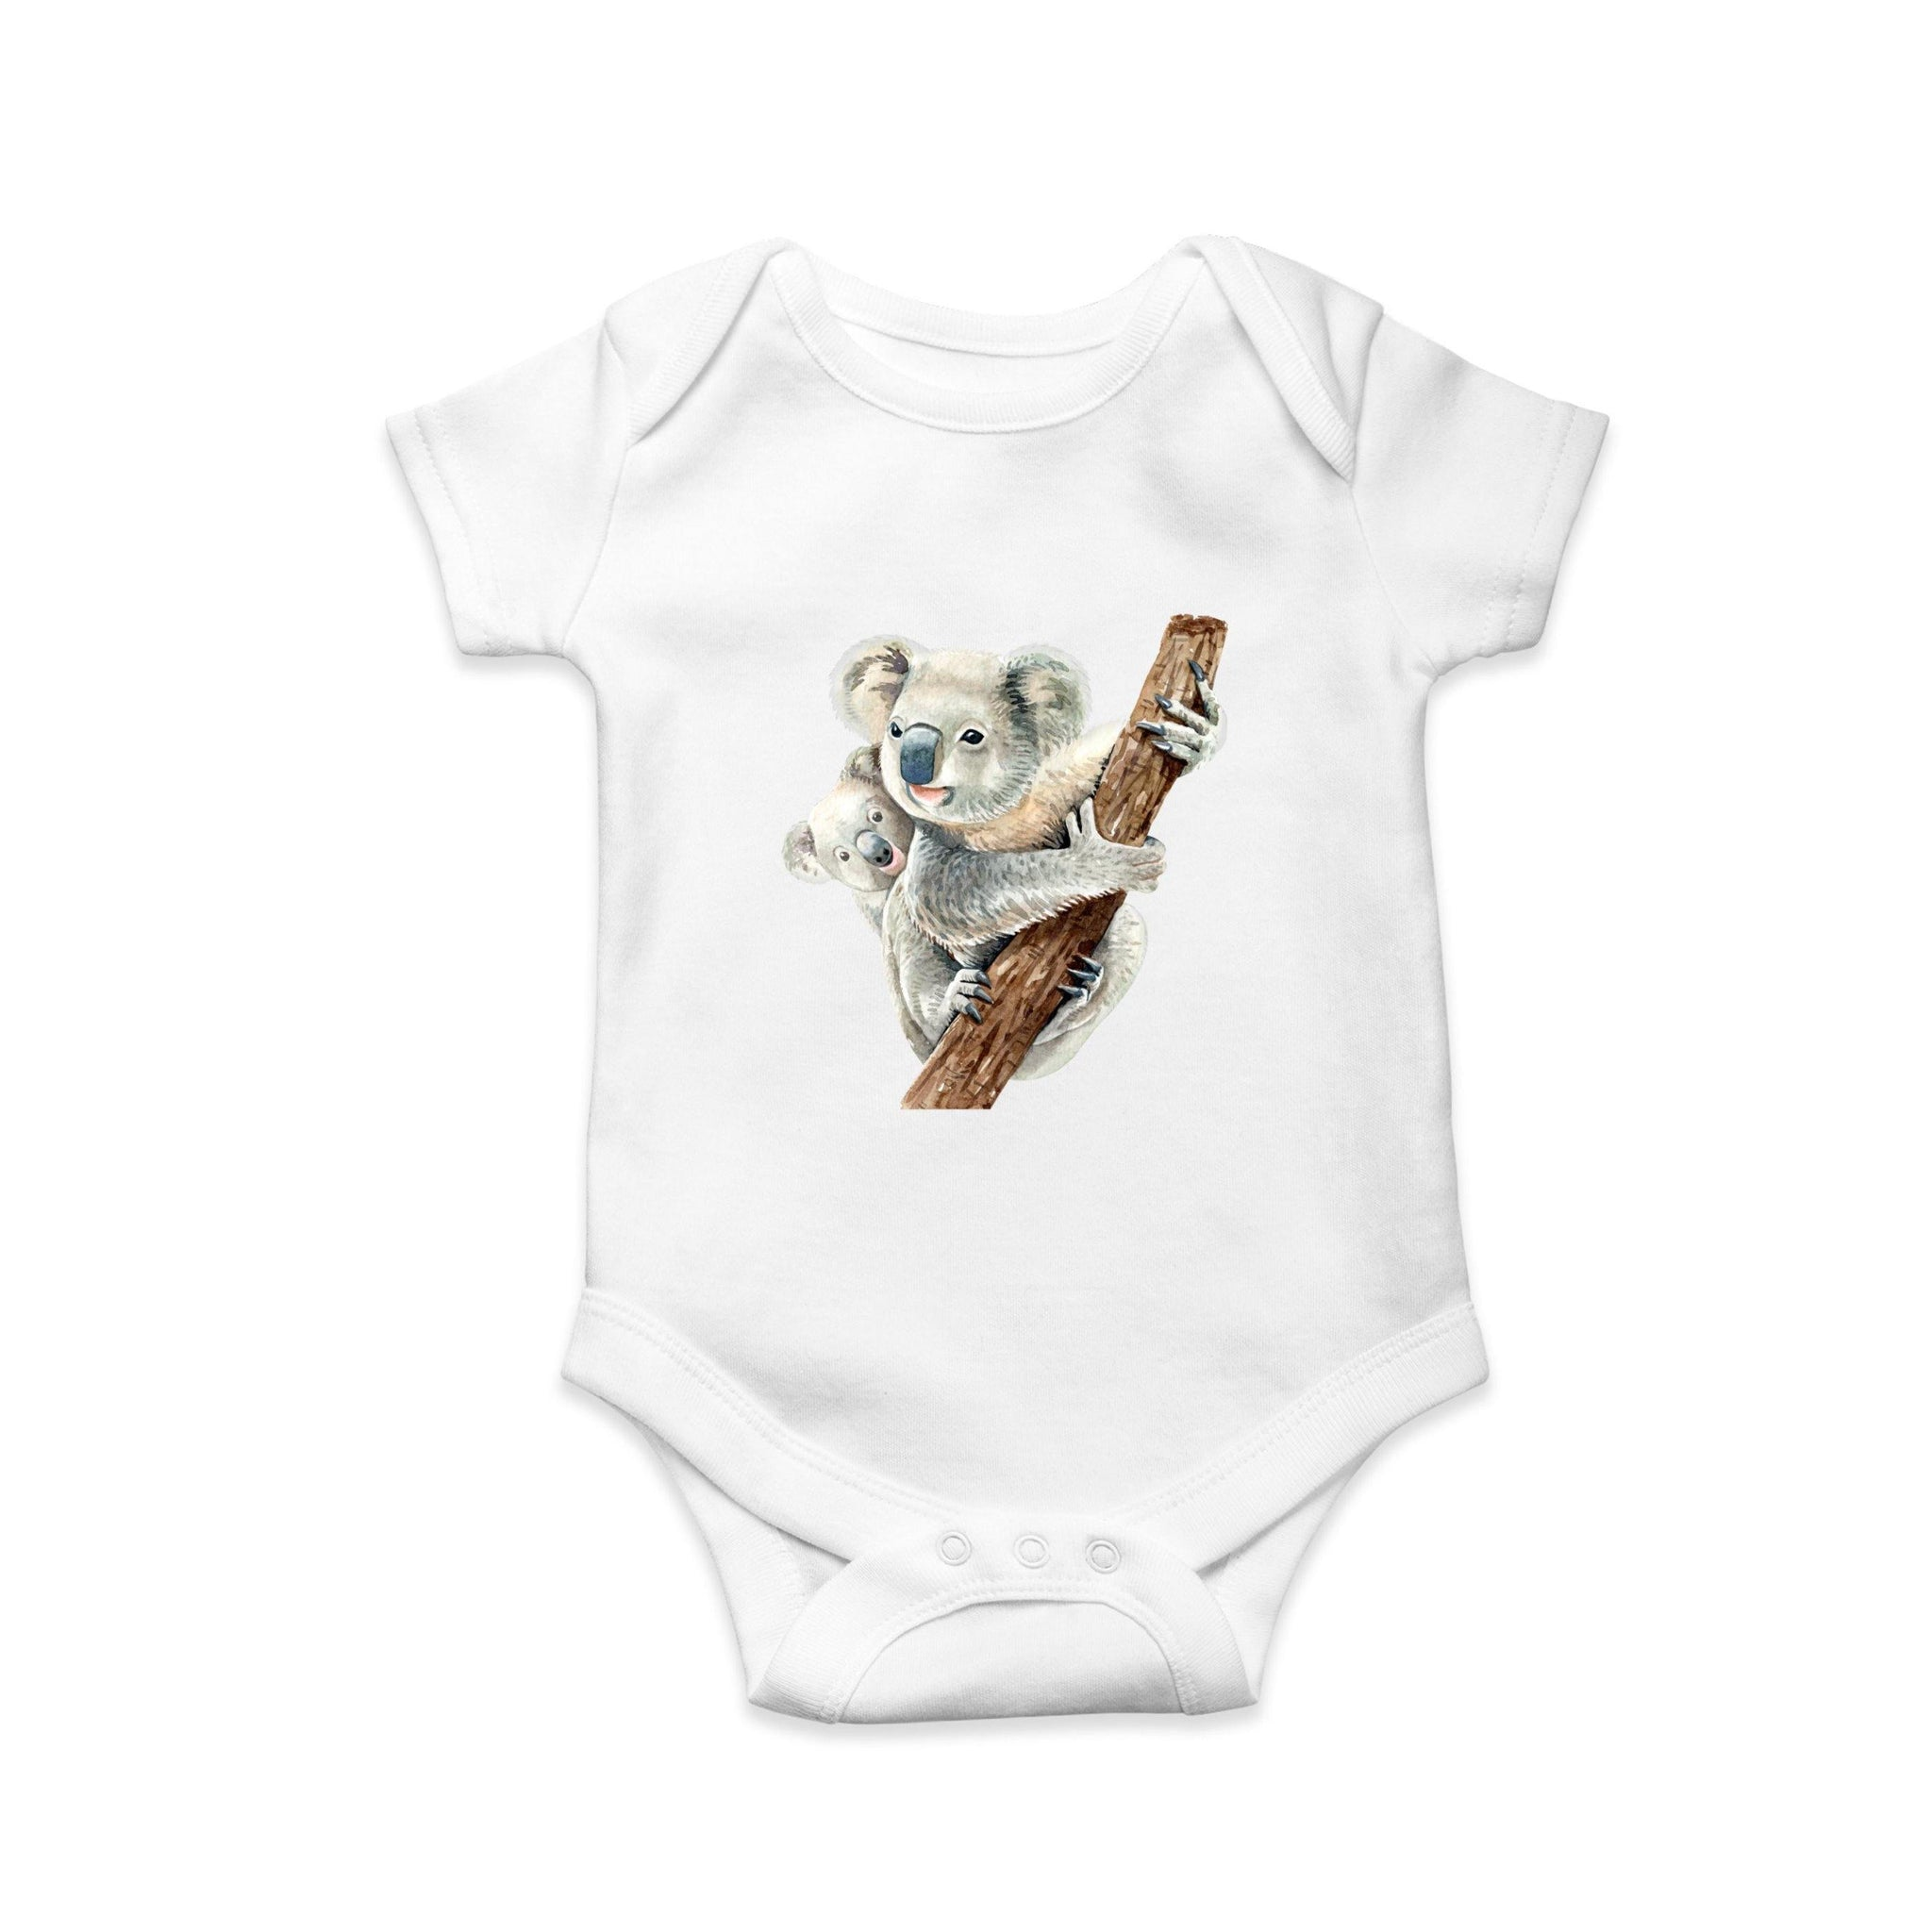 Koala baby body suit - Sew Tilley